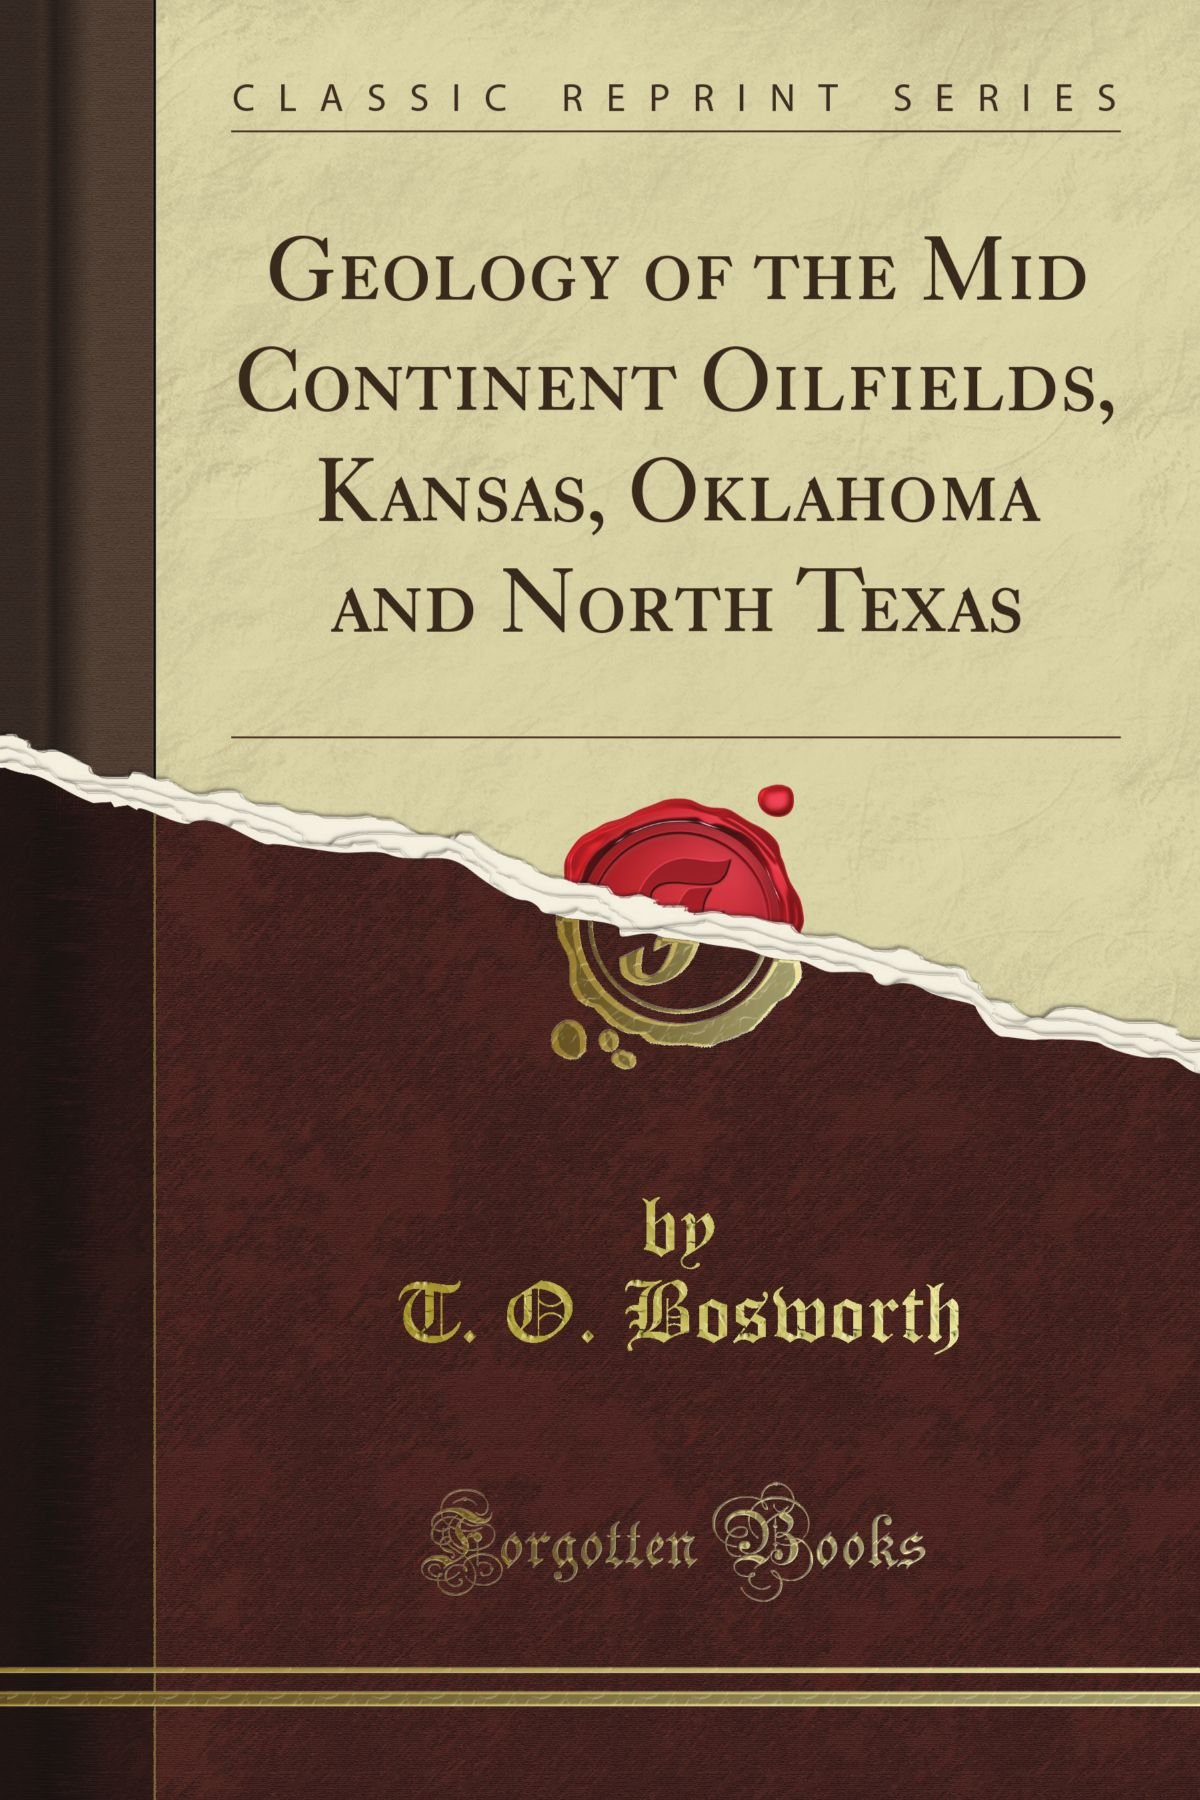 Map Of North Texas And Oklahoma.Geology Of The Mid Continent Oilfields Kansas Oklahoma And North